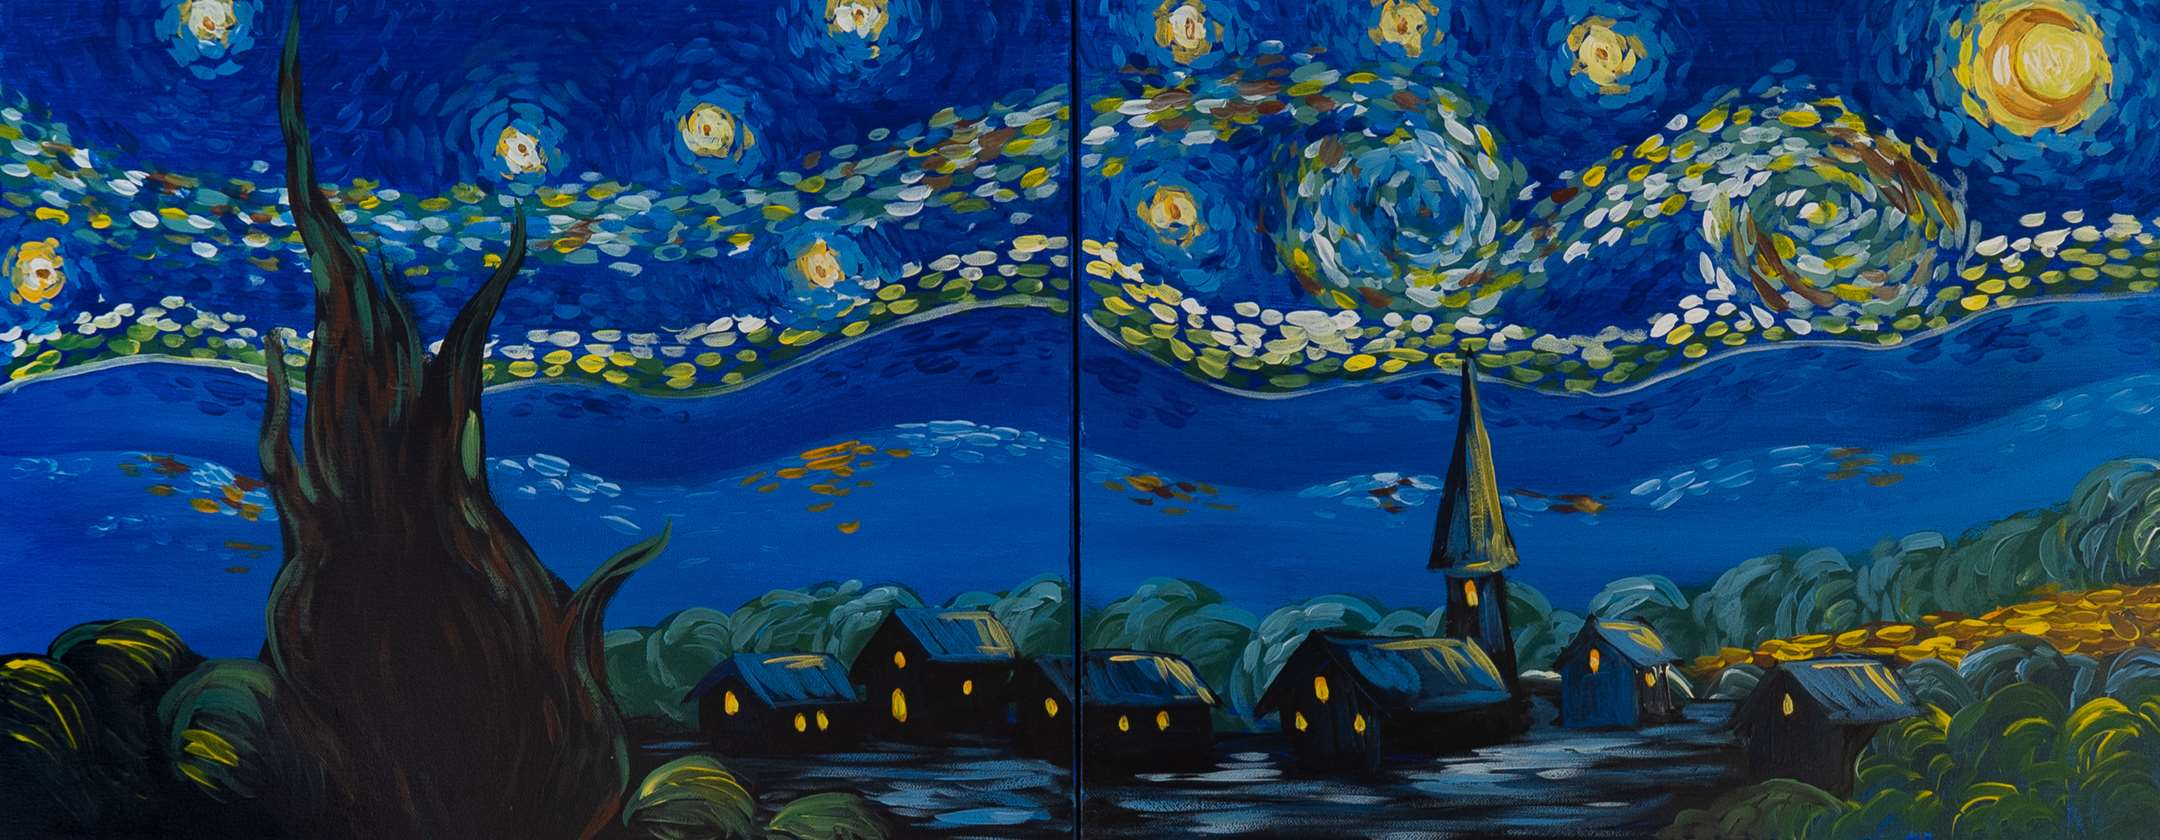 starry night painting essay Overview of vincent van gogh art essay print some of his most famous pieces are the starry night the viewer can tell the painting is a night scene.